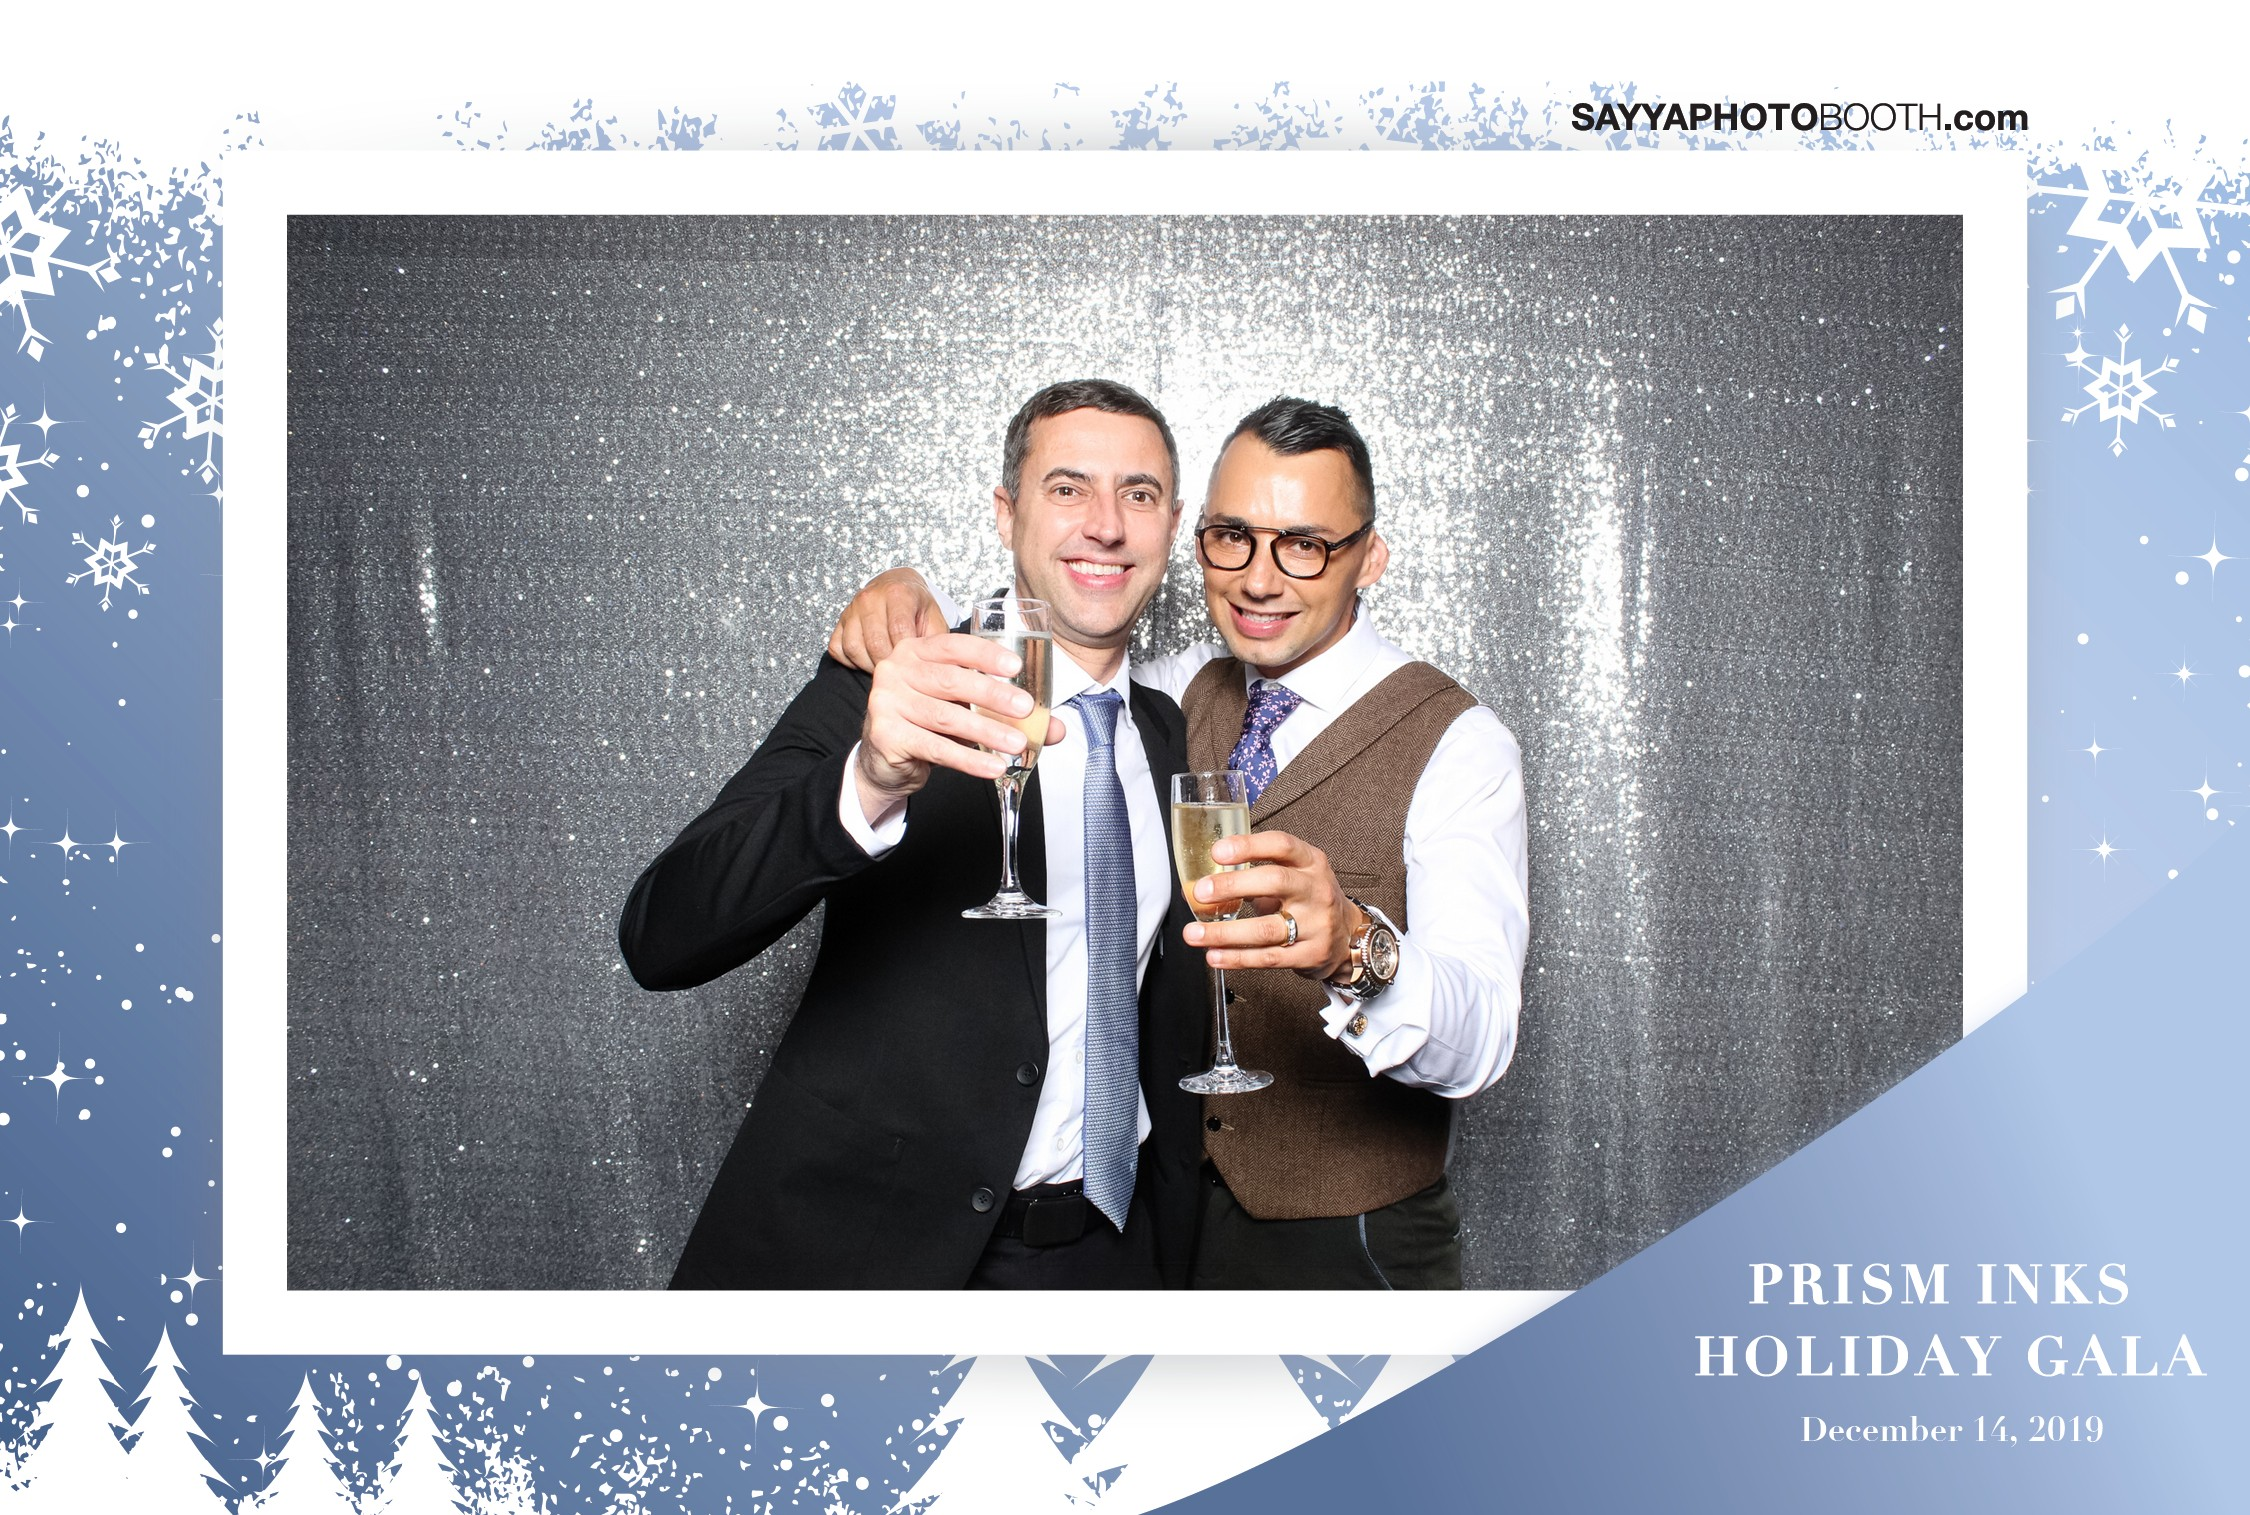 Prism Inks Holiday Celebration